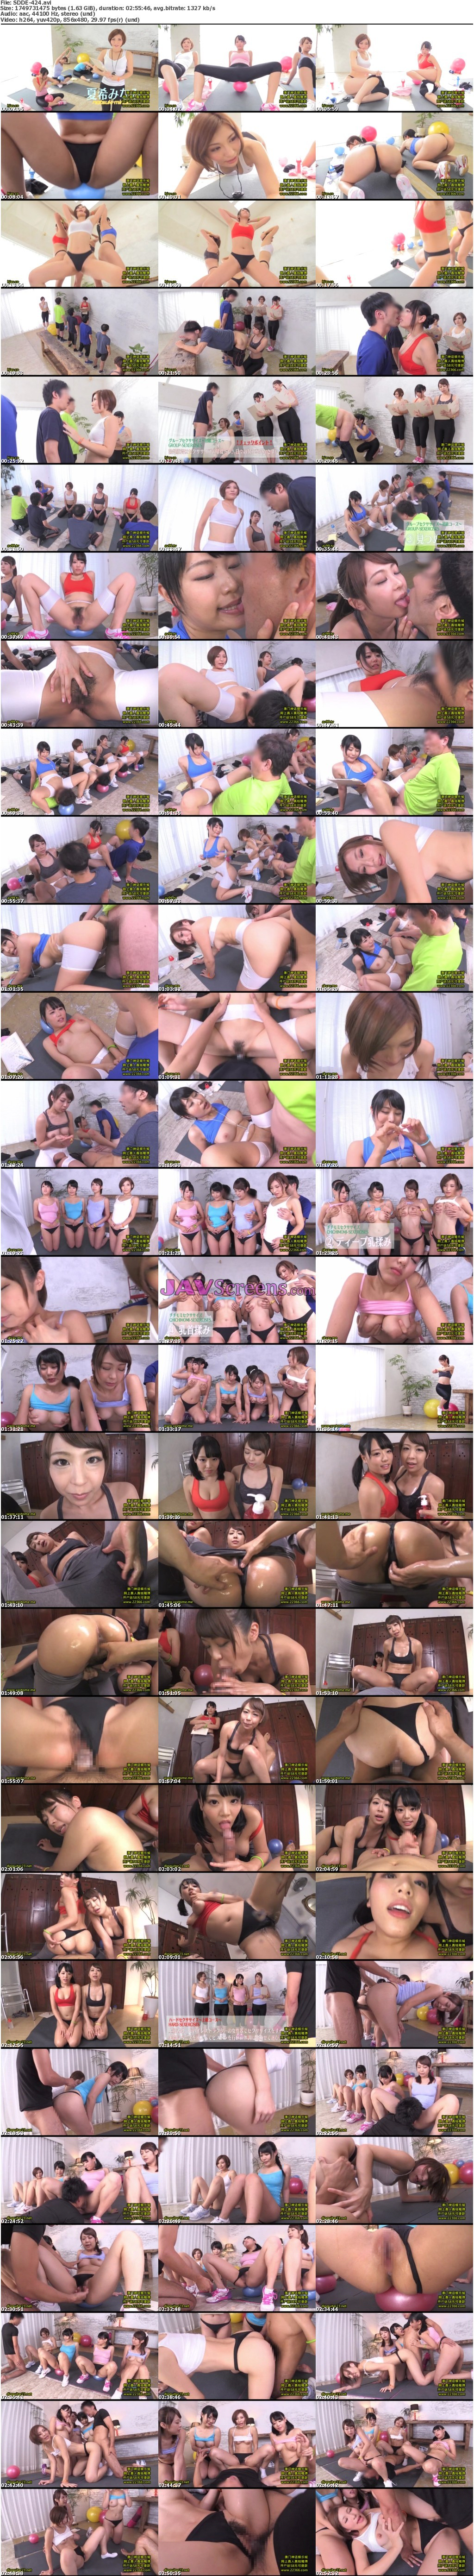 SDDE-424.jpg - JAV Screenshot